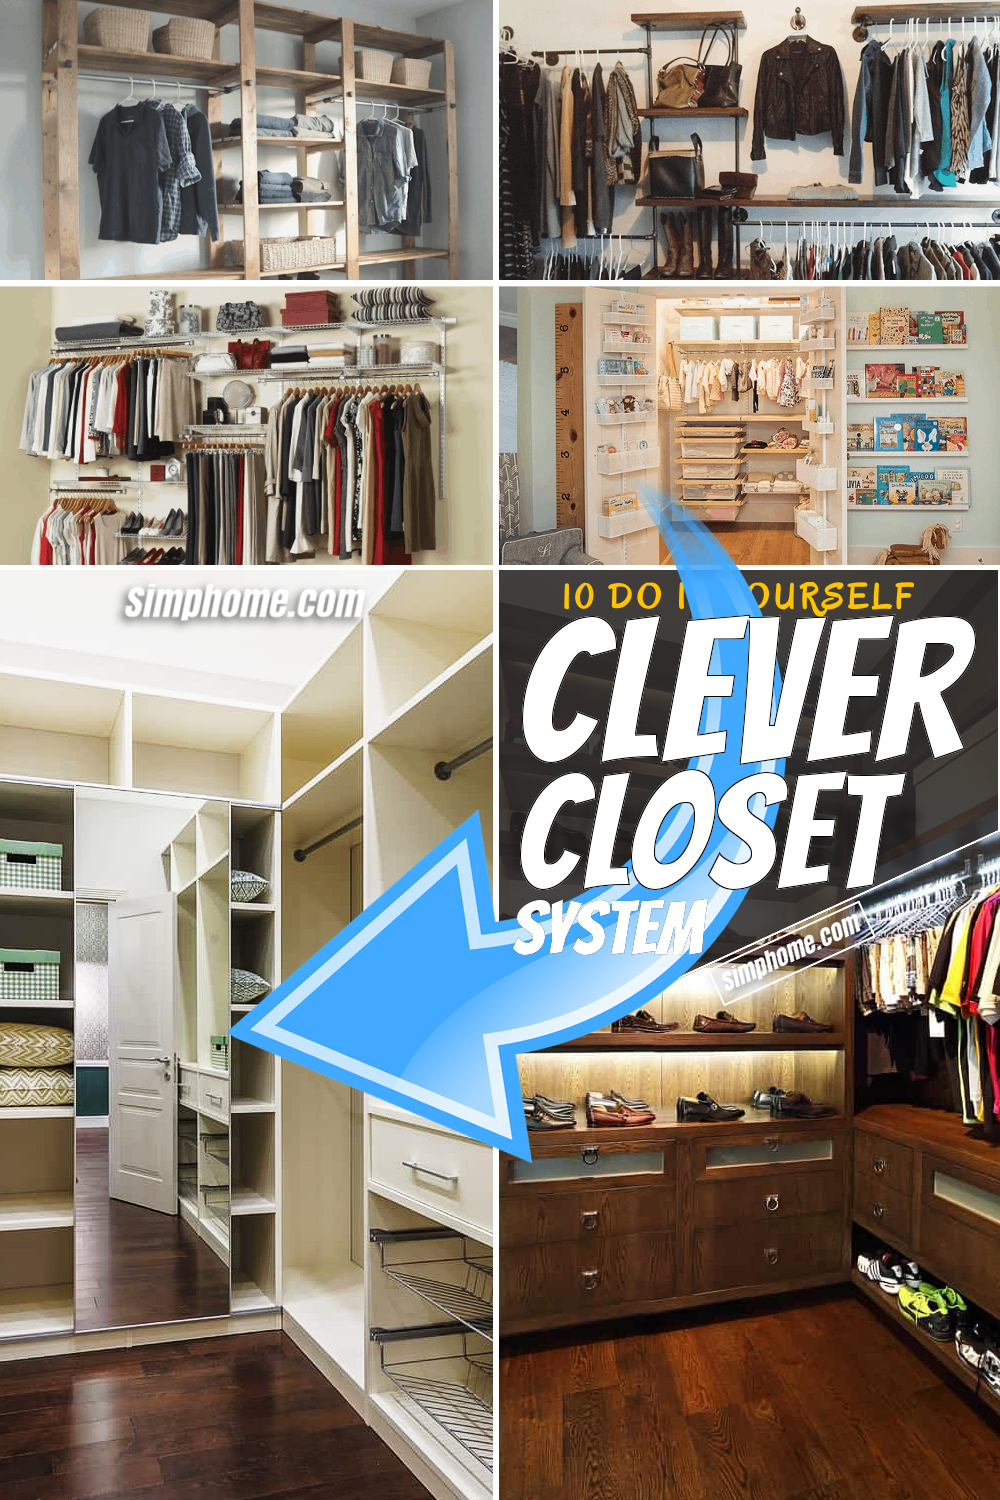 10 Clever Closet System via SIMPHOME.COM Featured Pinterest Image